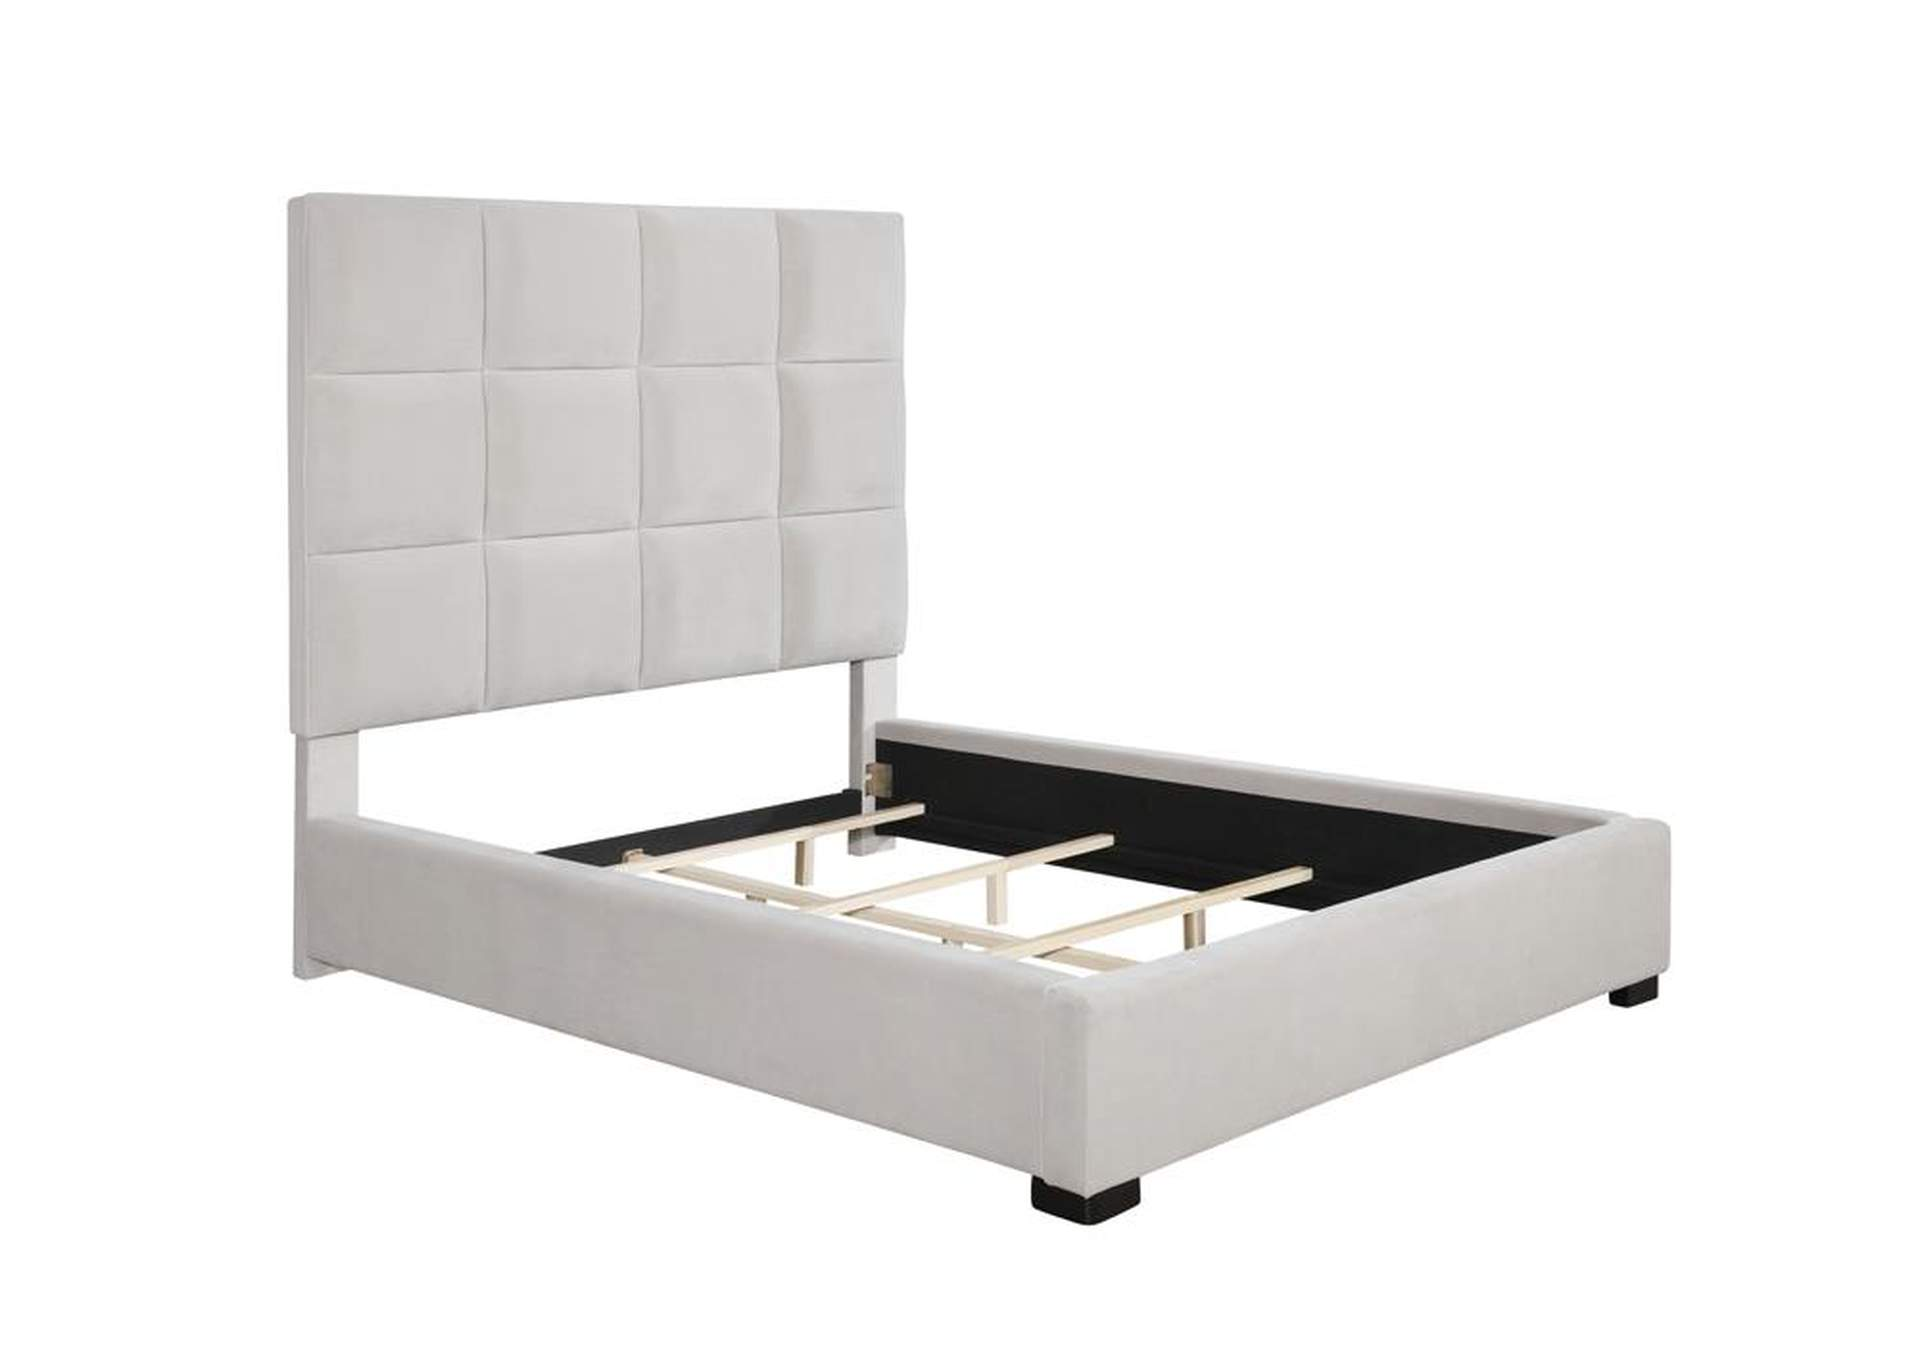 Beige Upholstered Eastern King Bed,Coaster Furniture